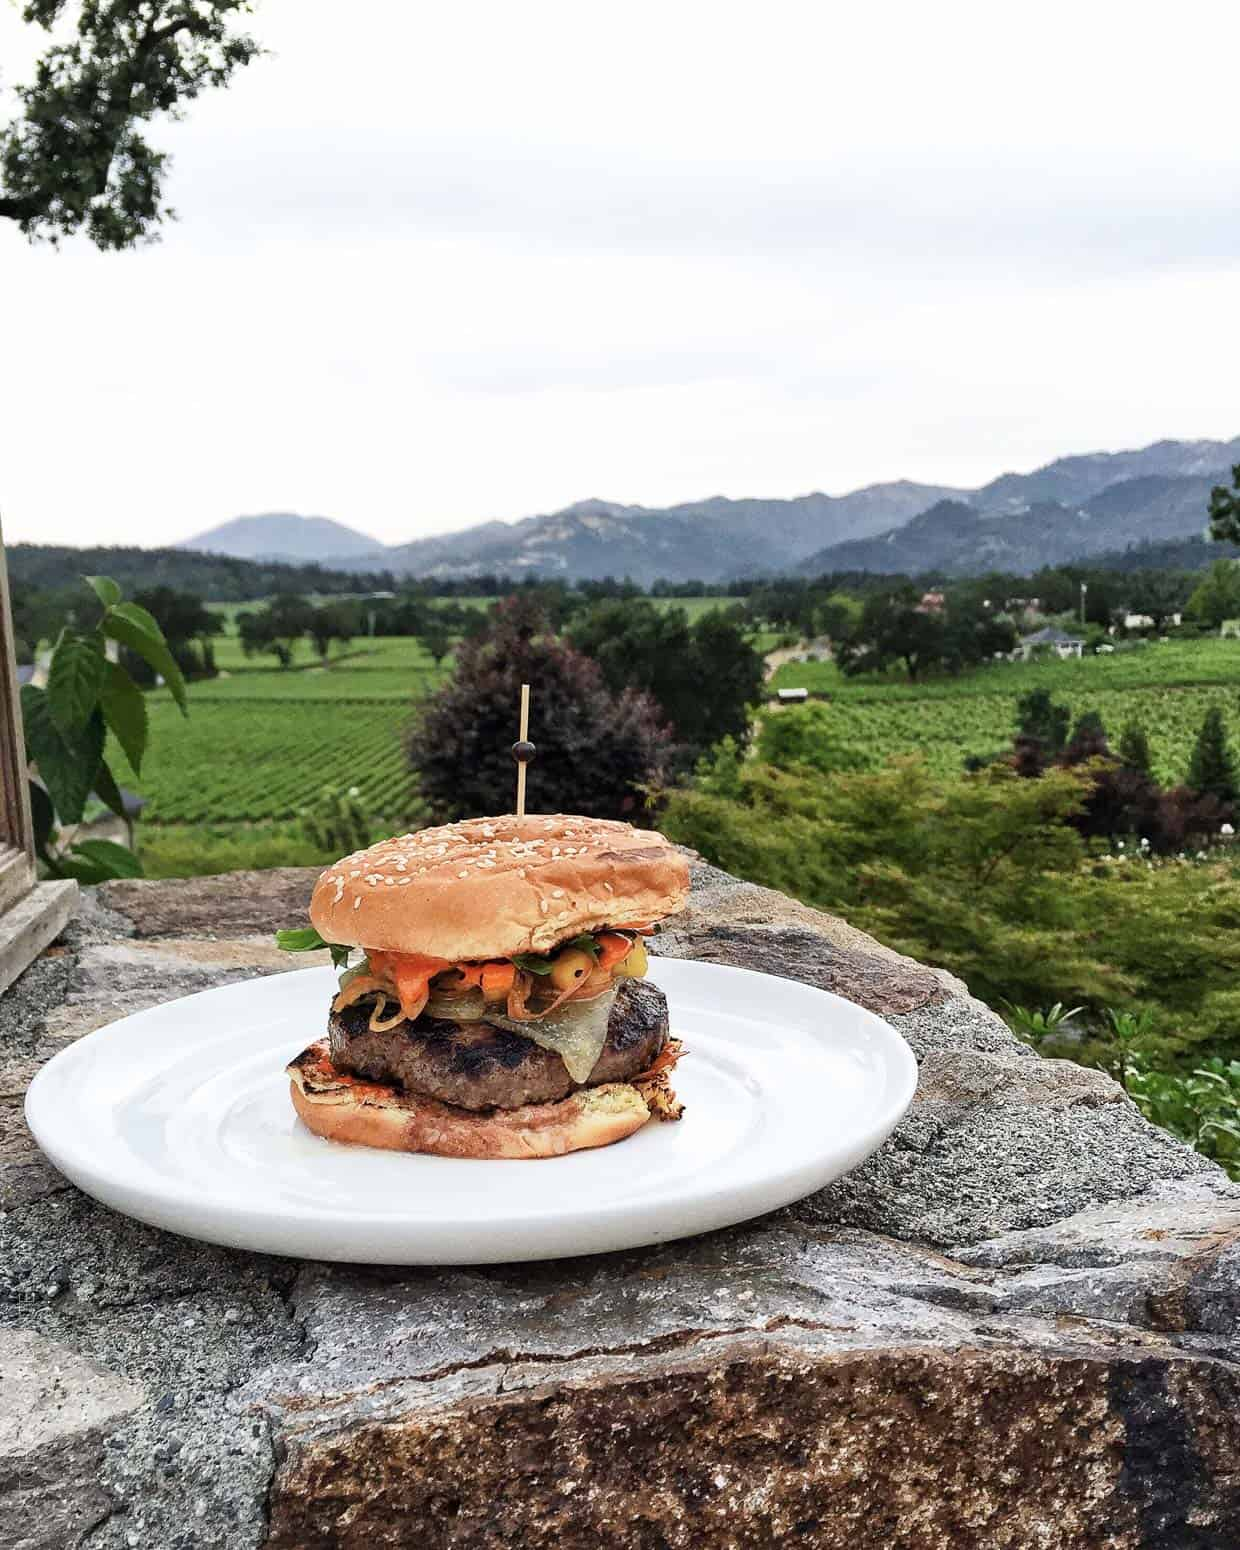 Smoky Spanish Beef Burgers with Pickled Saffron Pears was the winning recipe at the 25th Annual @SutterHome #Buildabetterburger contest and it truly is a winner for your next cook out! The burger is juicy, with salty prosciutto, spicy aioli and has tangy pickled pears!